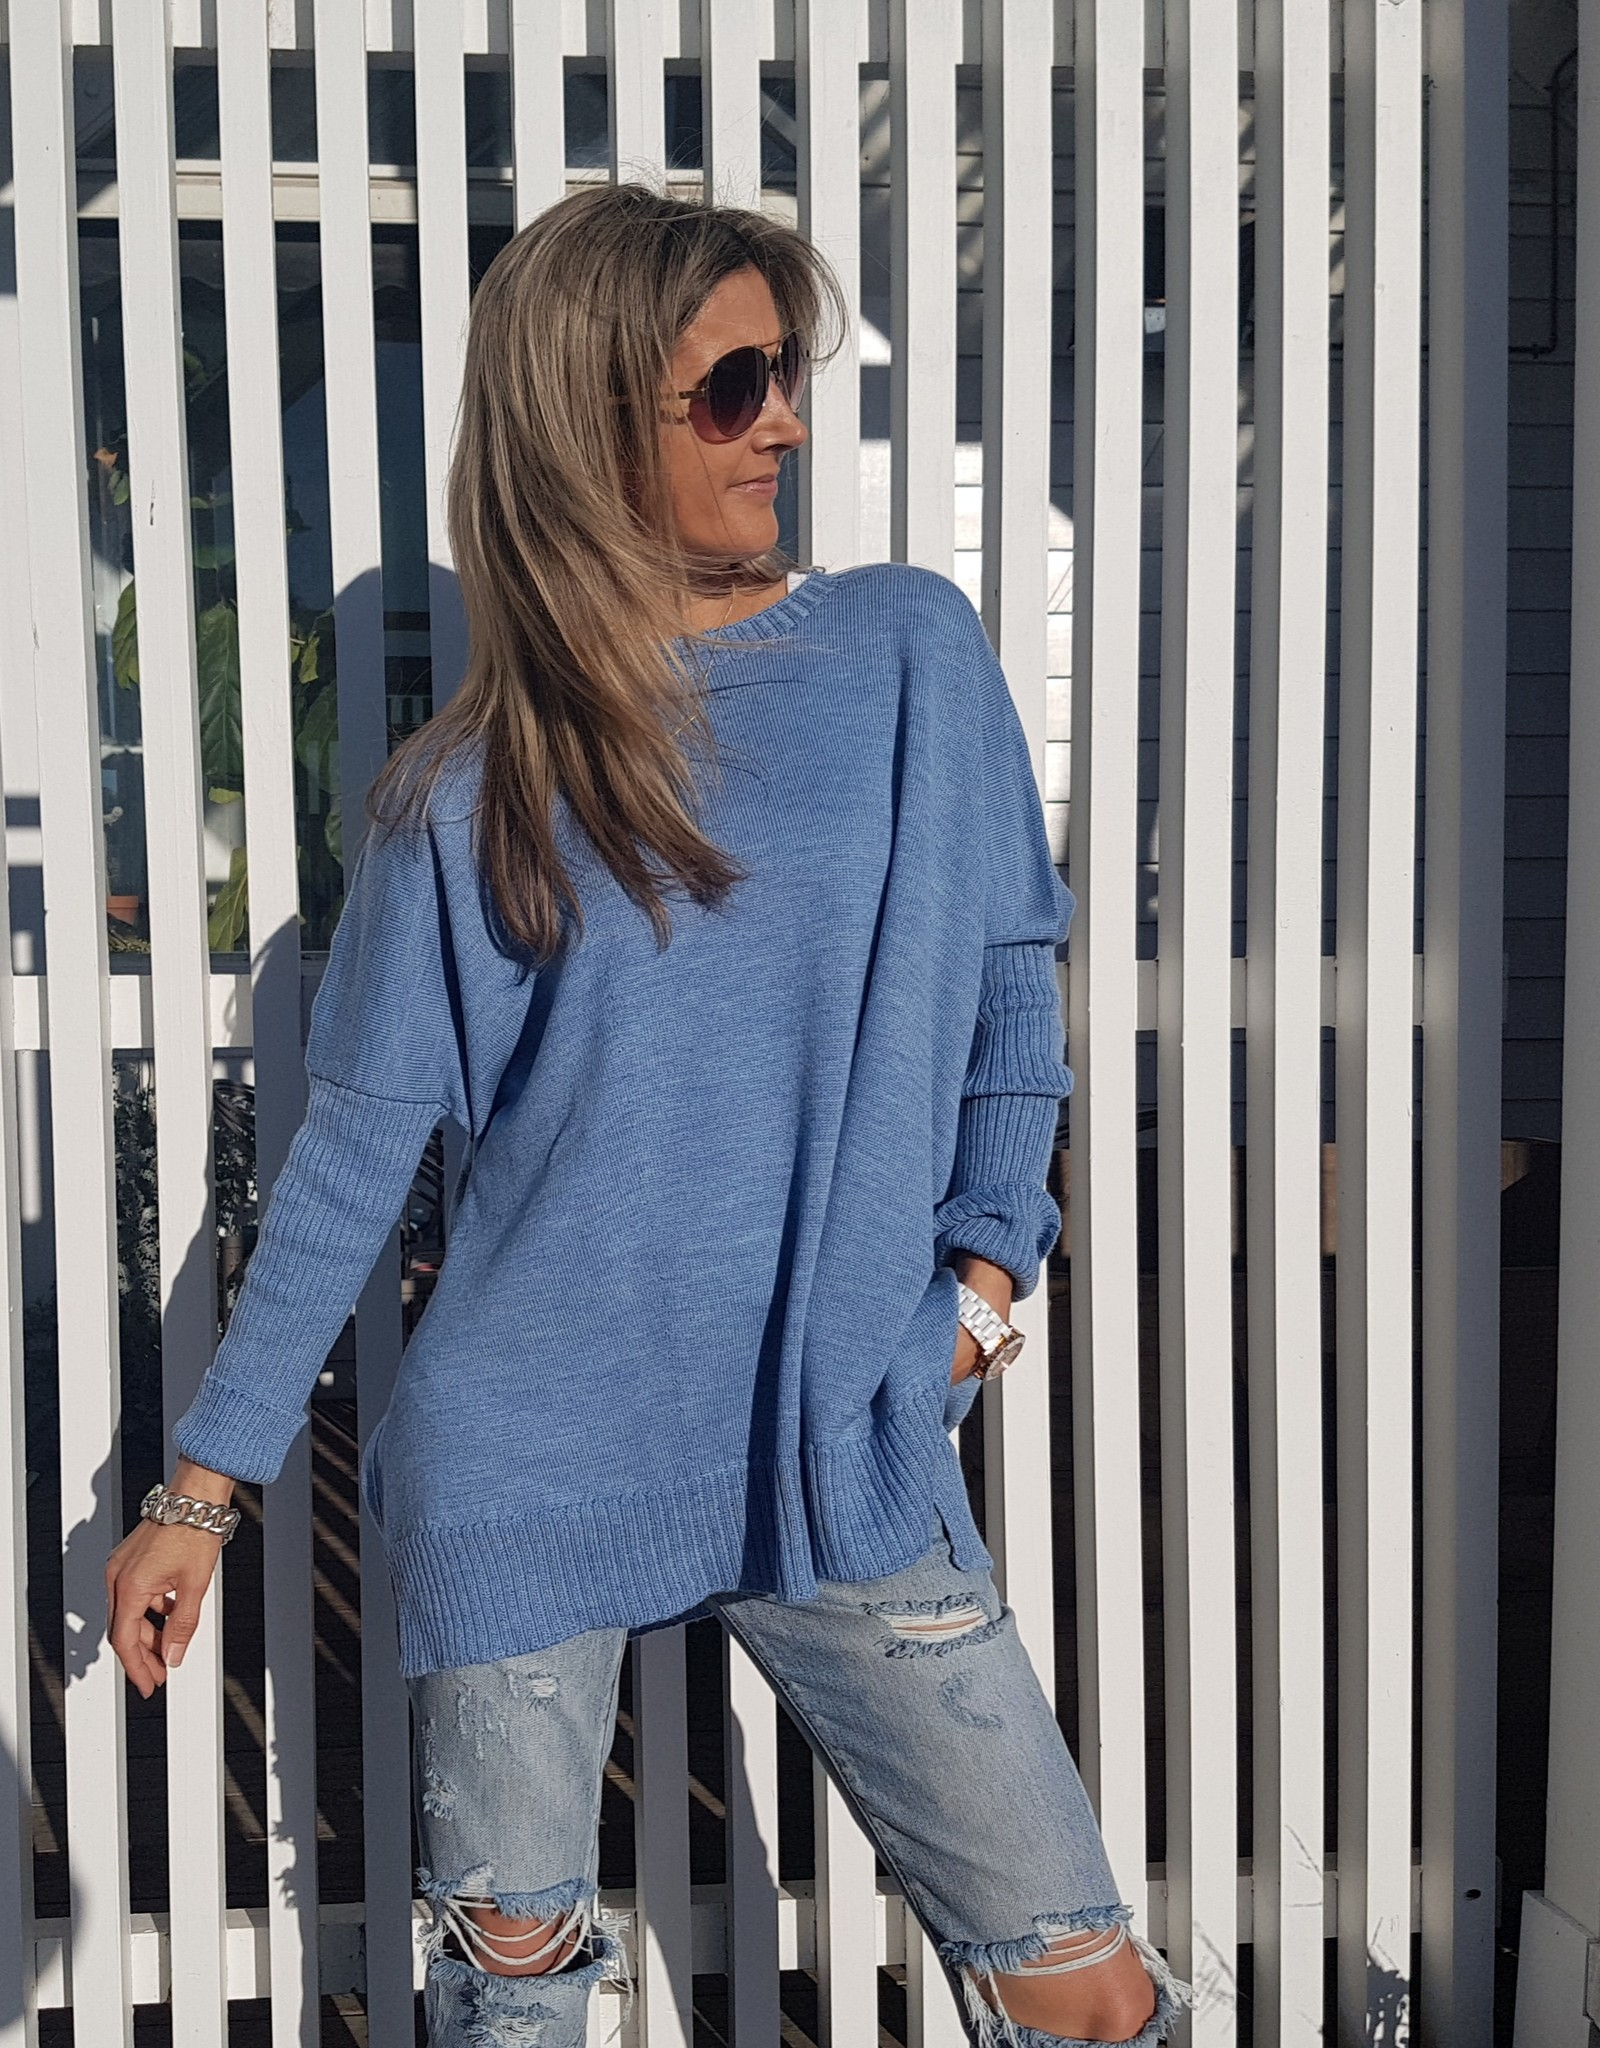 THE KNIT STUDIO MERINO BOXY SPLIT CREW NECK BLUE